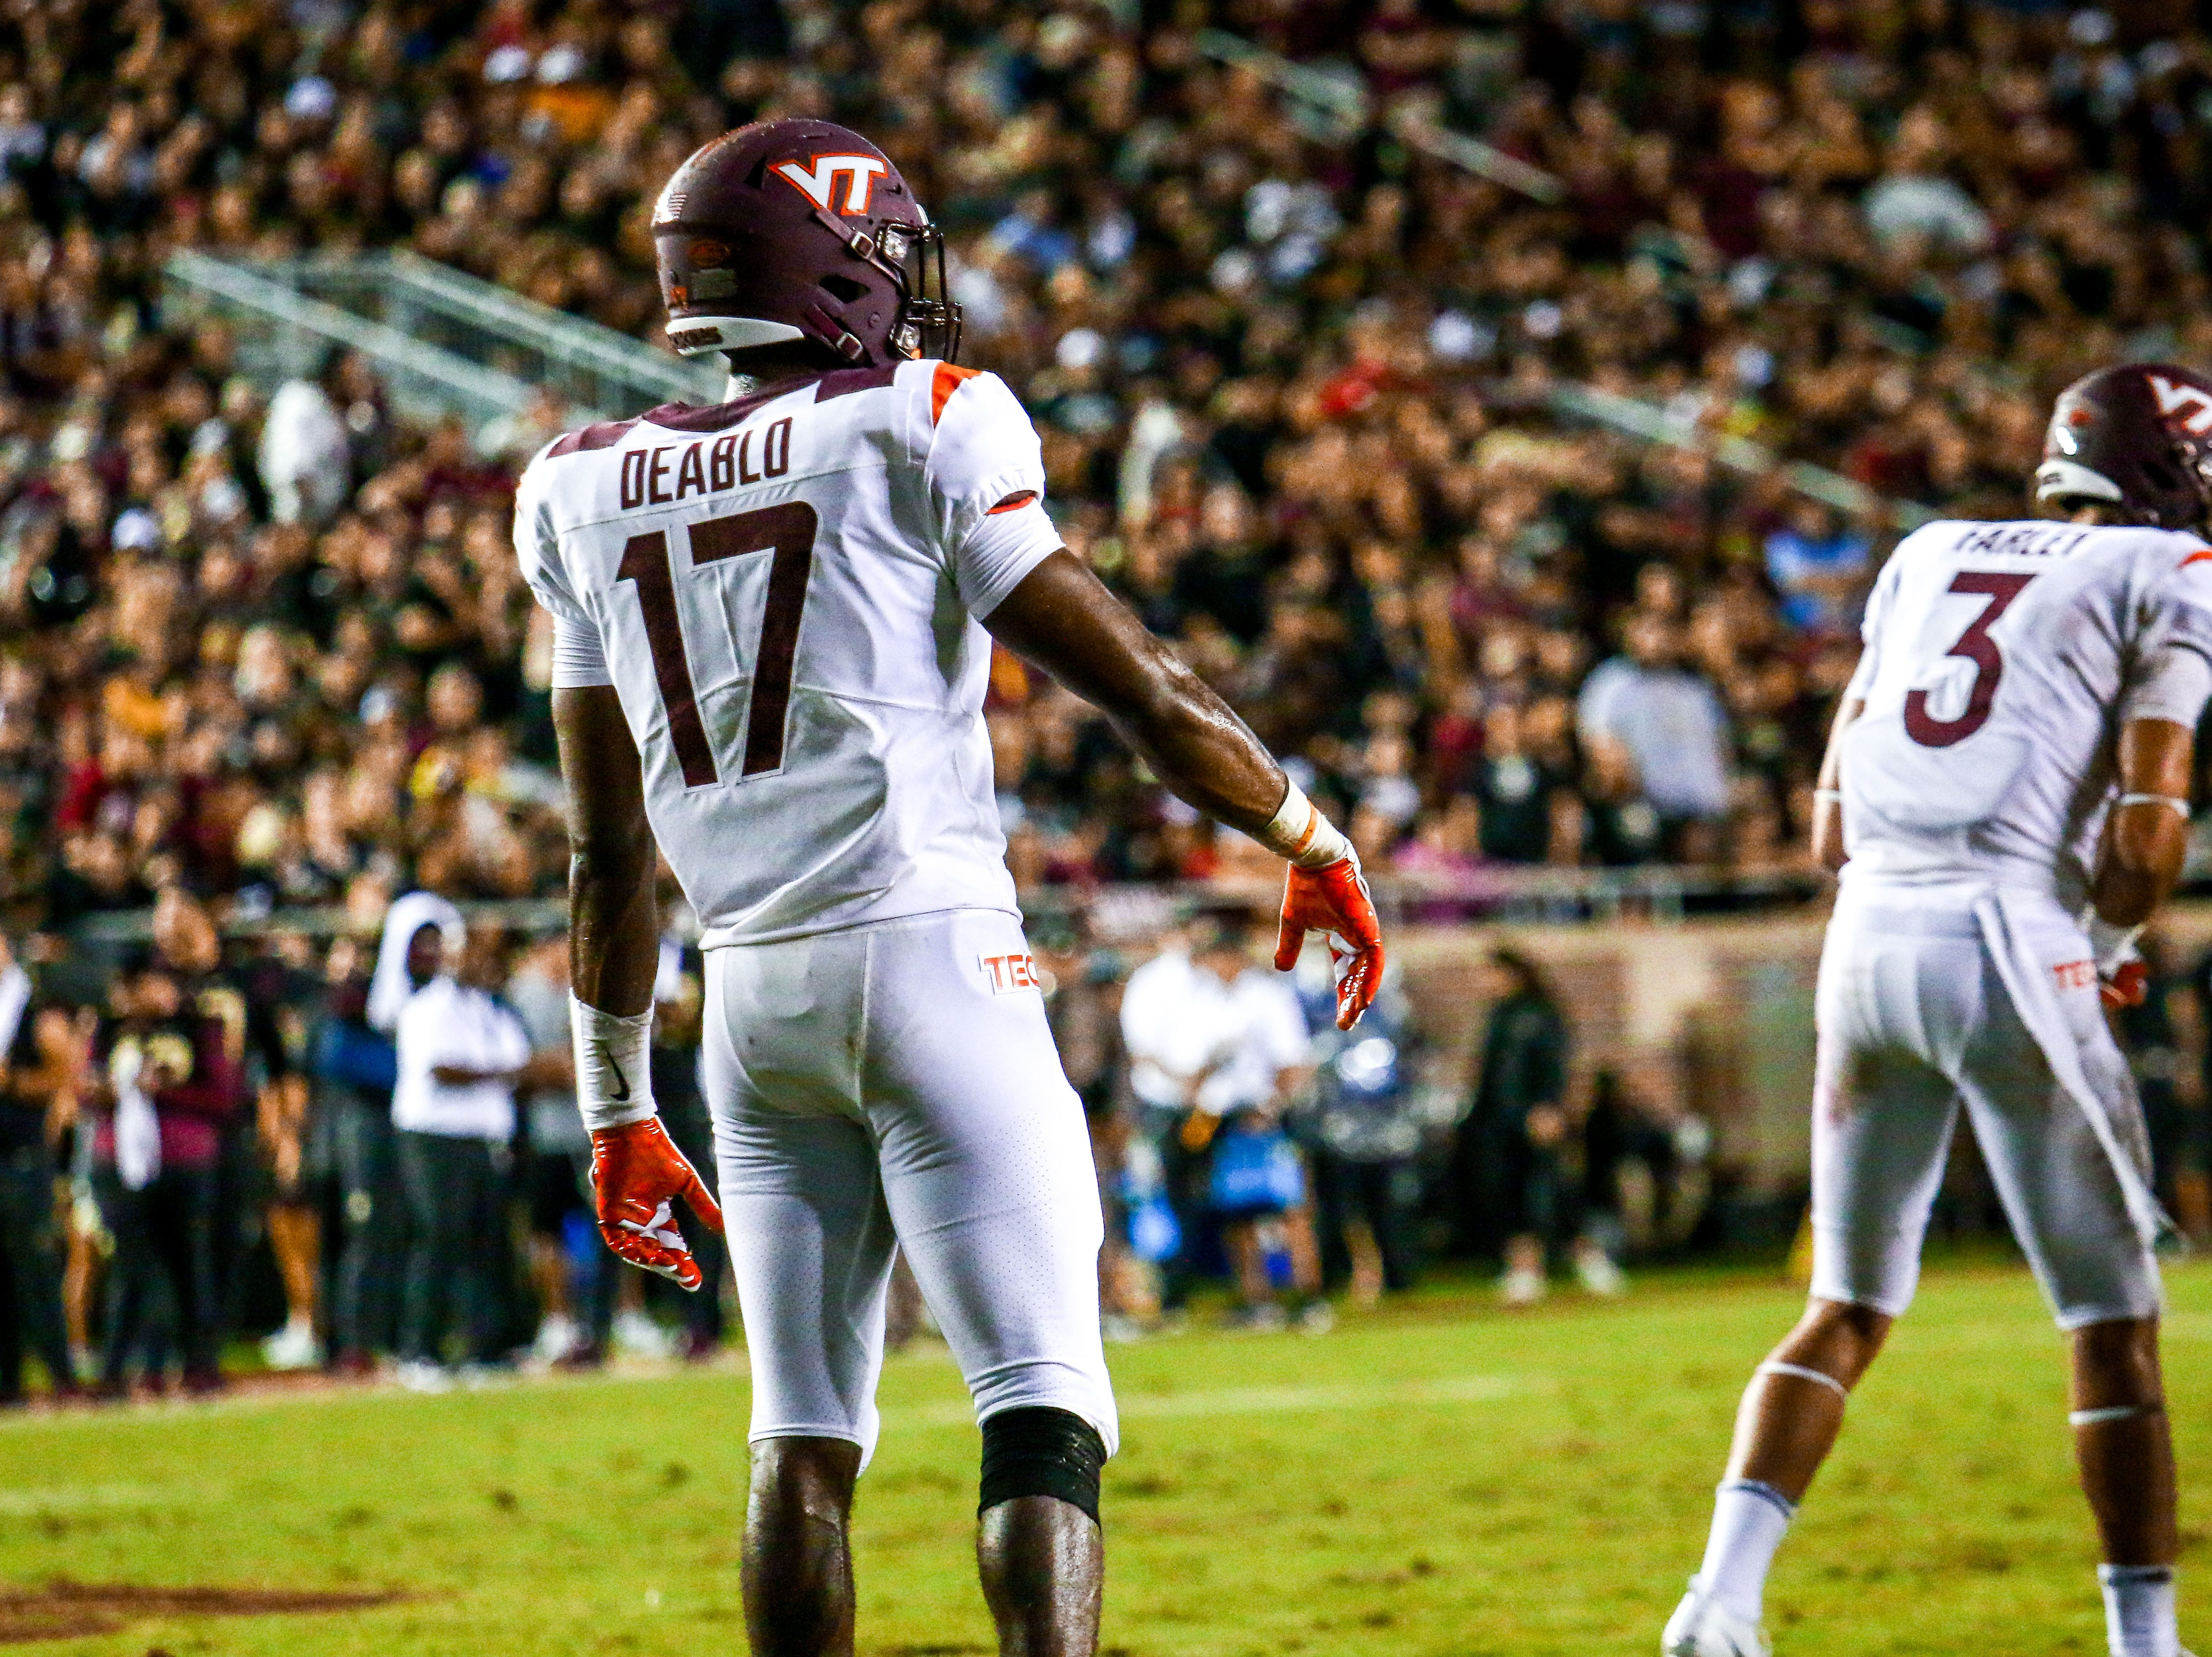 Divine Deablo (17) and the Virginia Tech defense punished FSU's offensive mistakes the entire game. FSU would go on to put up only 3 points on Monday, September 3rd at Doak Campbell Stadium.